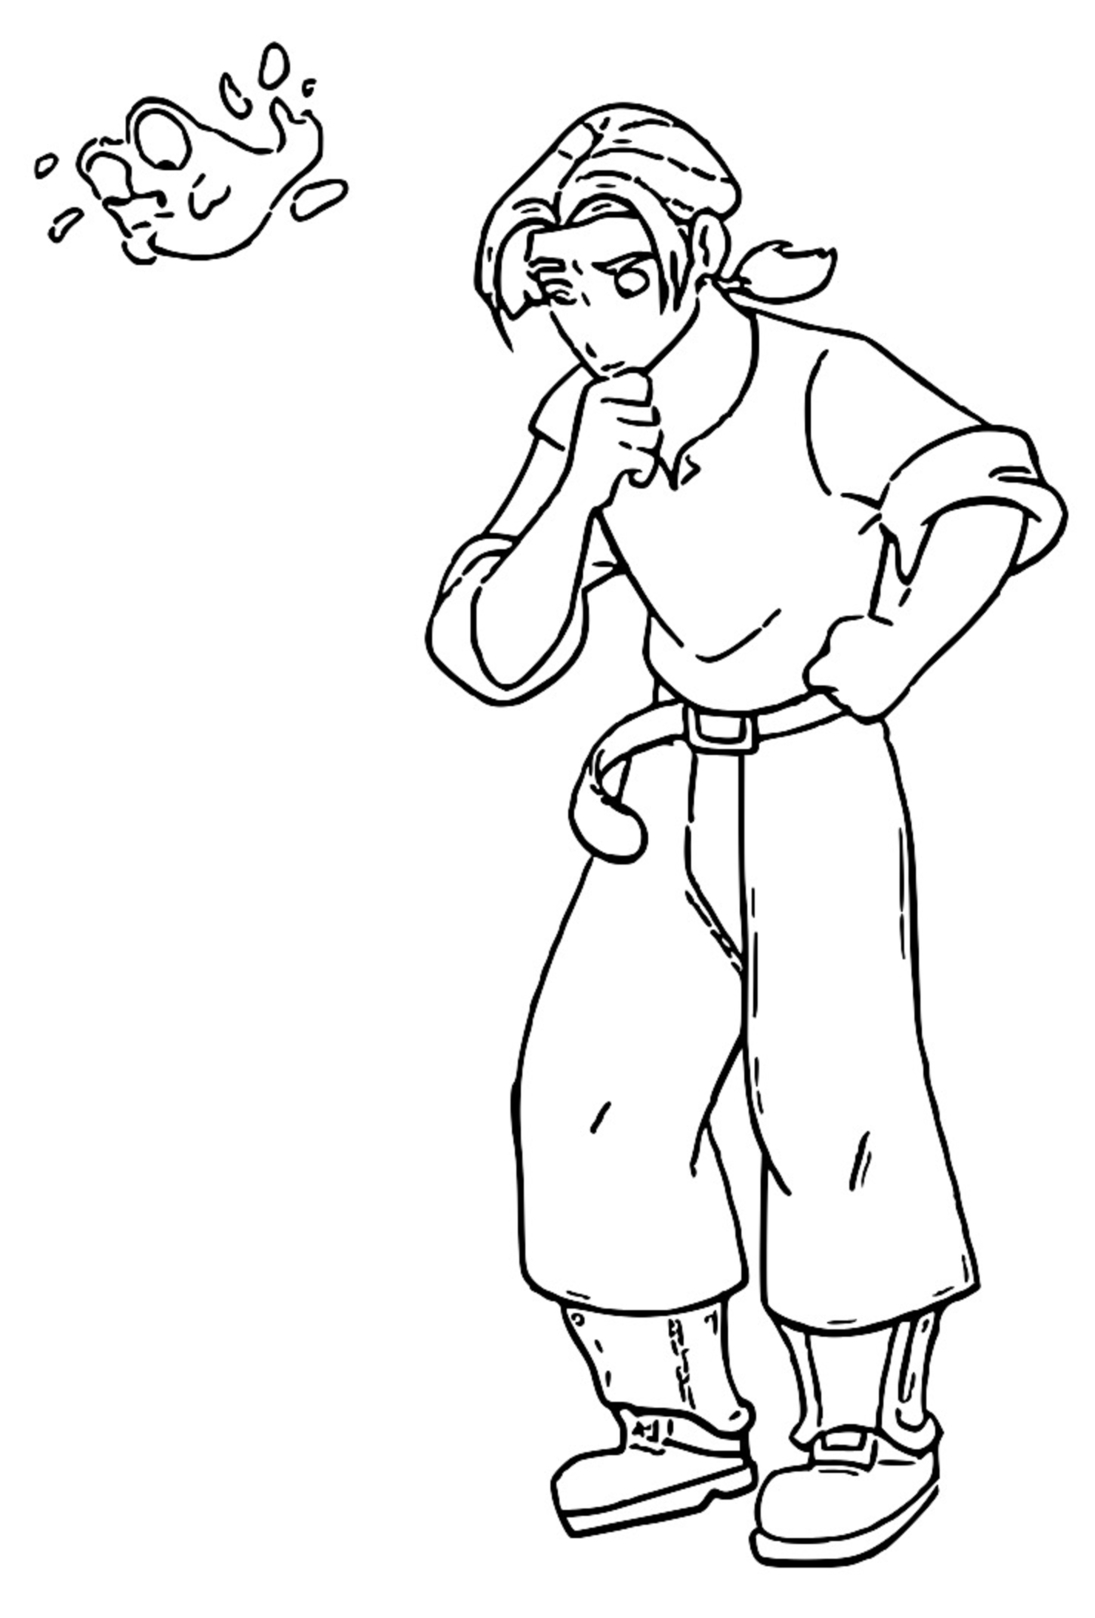 Treasure Planet thinking Coloring Pages_Cartoonized